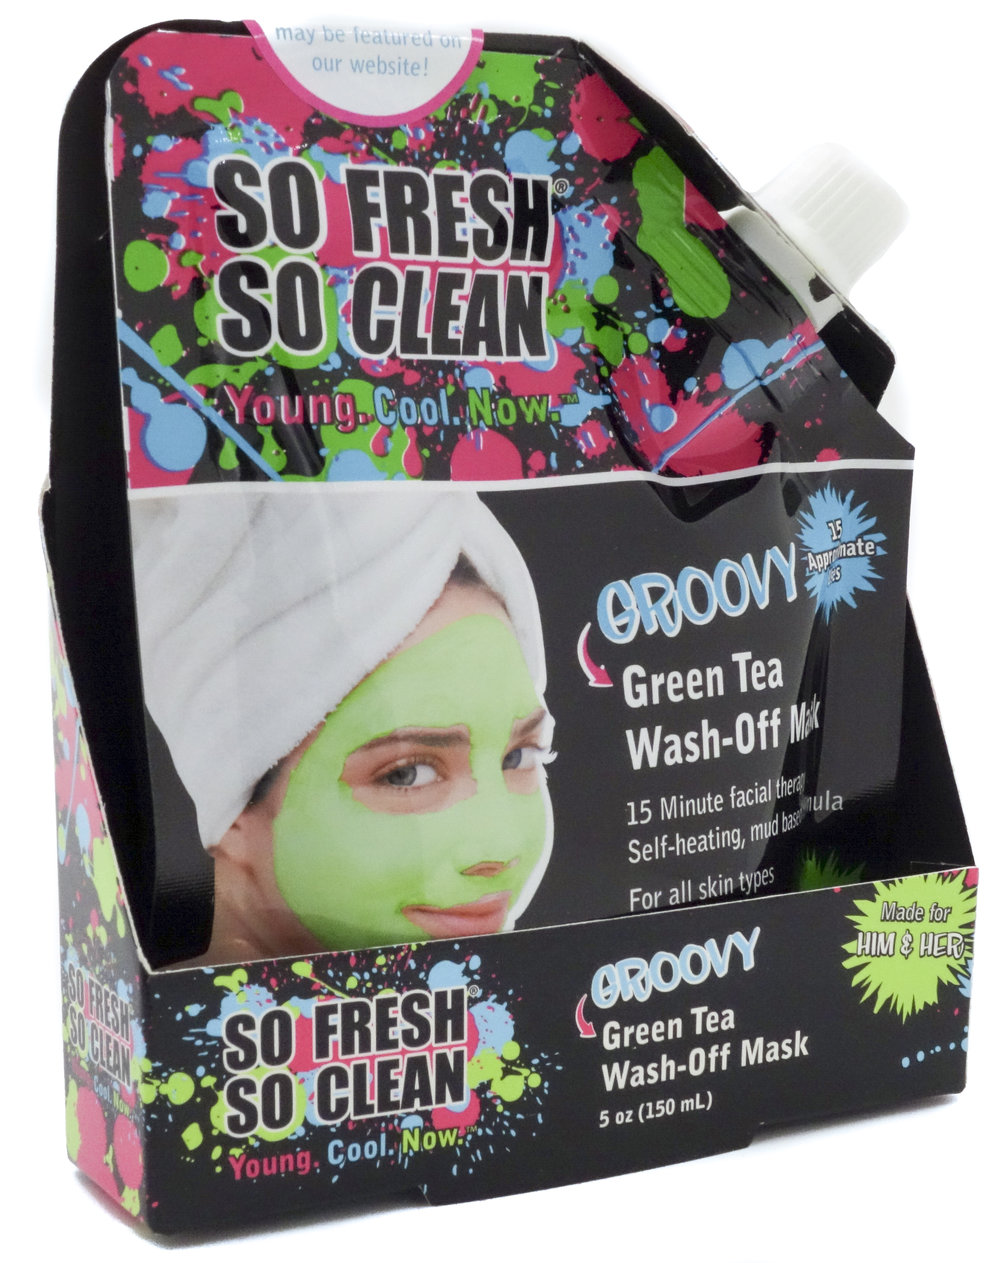 So Fresh So Clean Masks.jpg